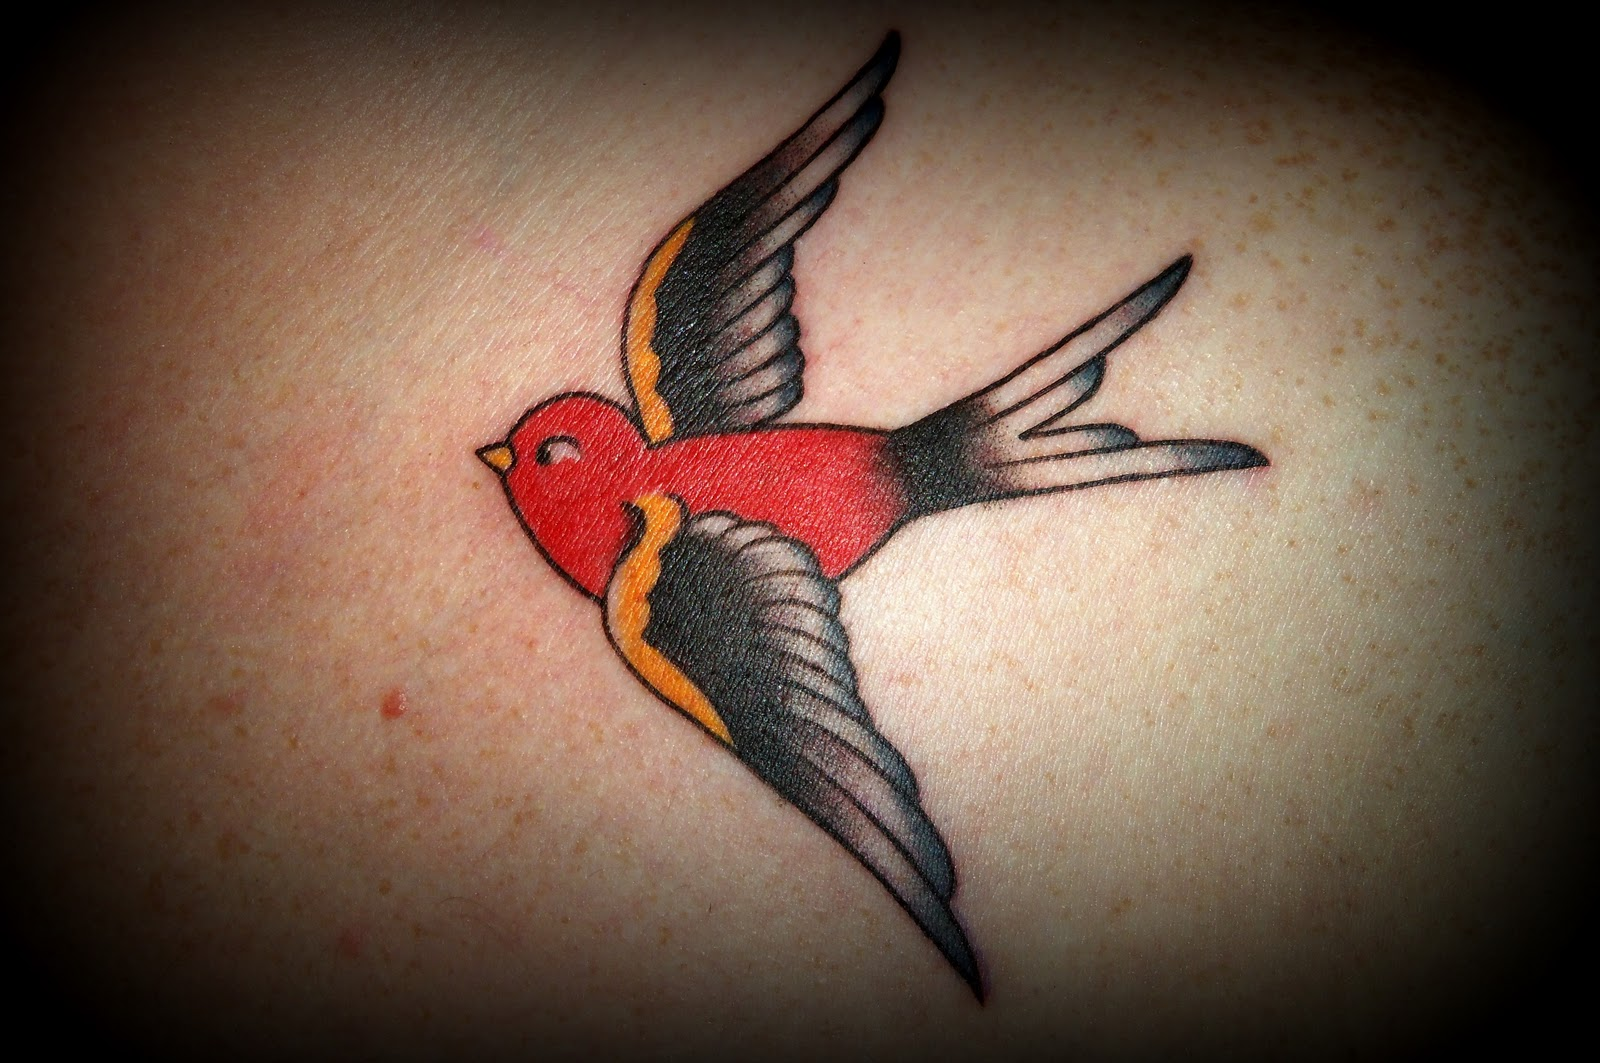 Sailor Jerry Swallow Tattoo With BannerSailor Jerry Swallow Tattoo